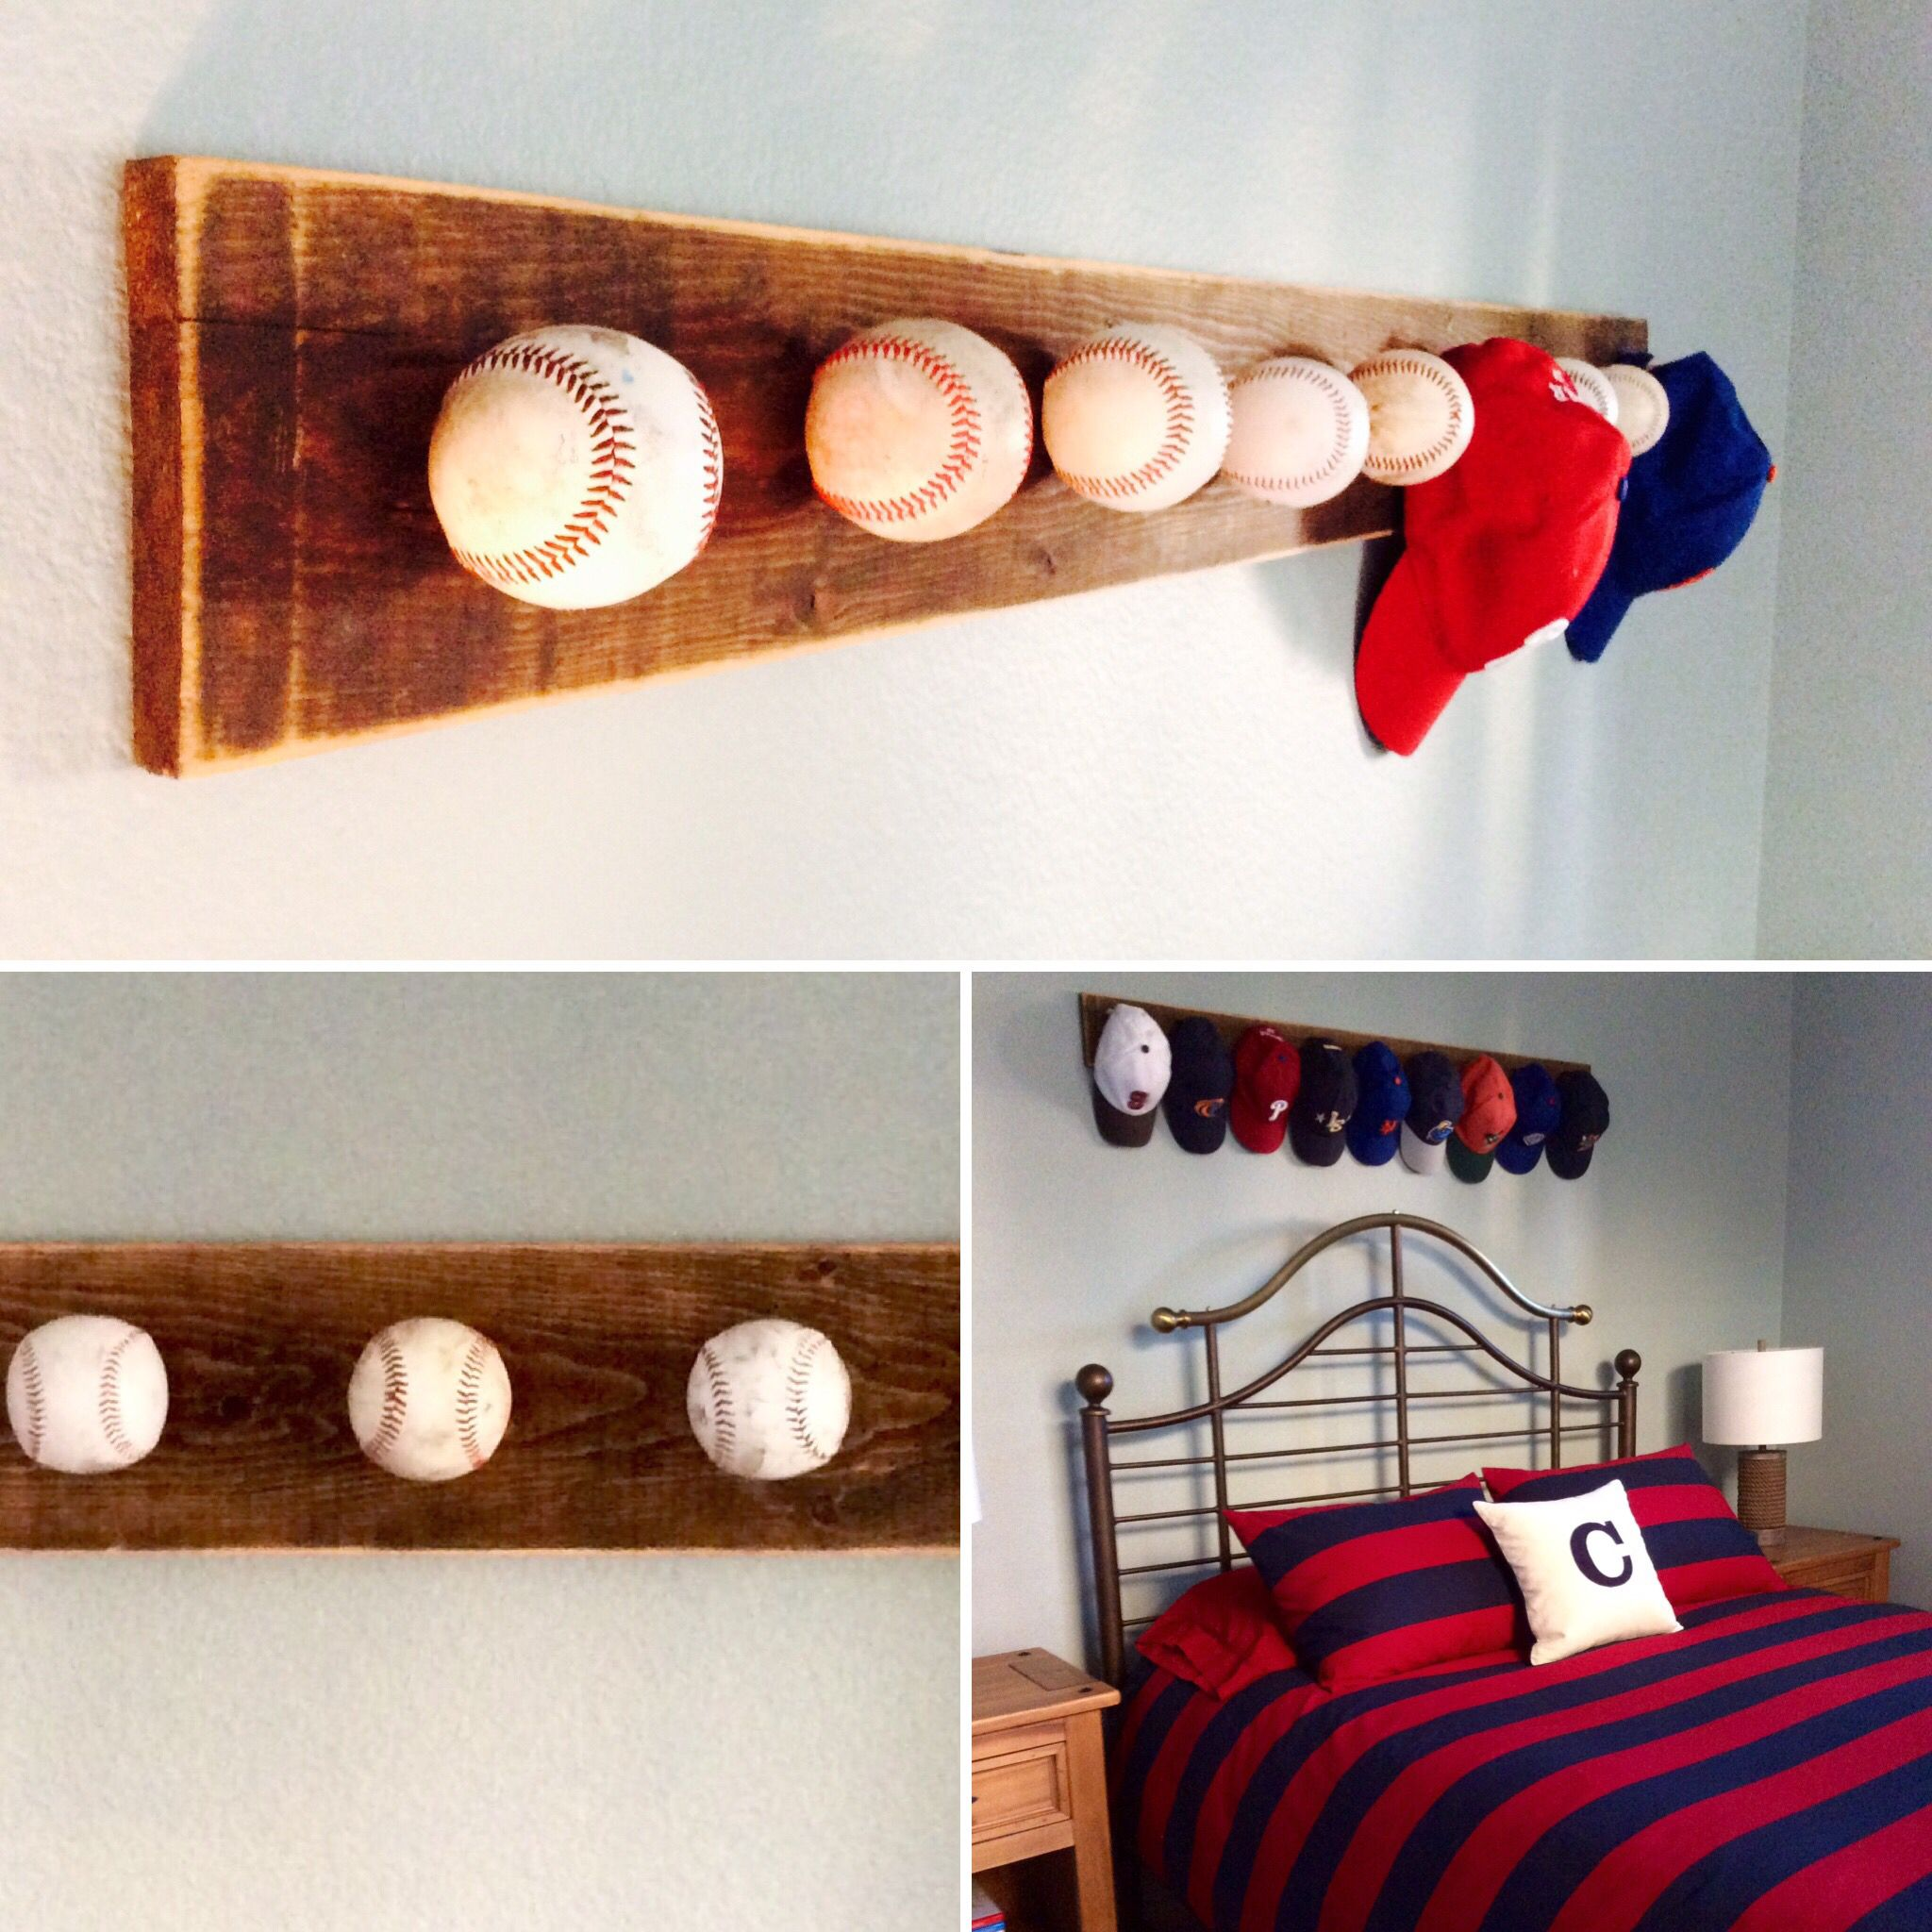 6 Ideas On How To Display Your Home Accessories: 13+ Hat Rack Ideas, Easy And Simple For Sweet Home